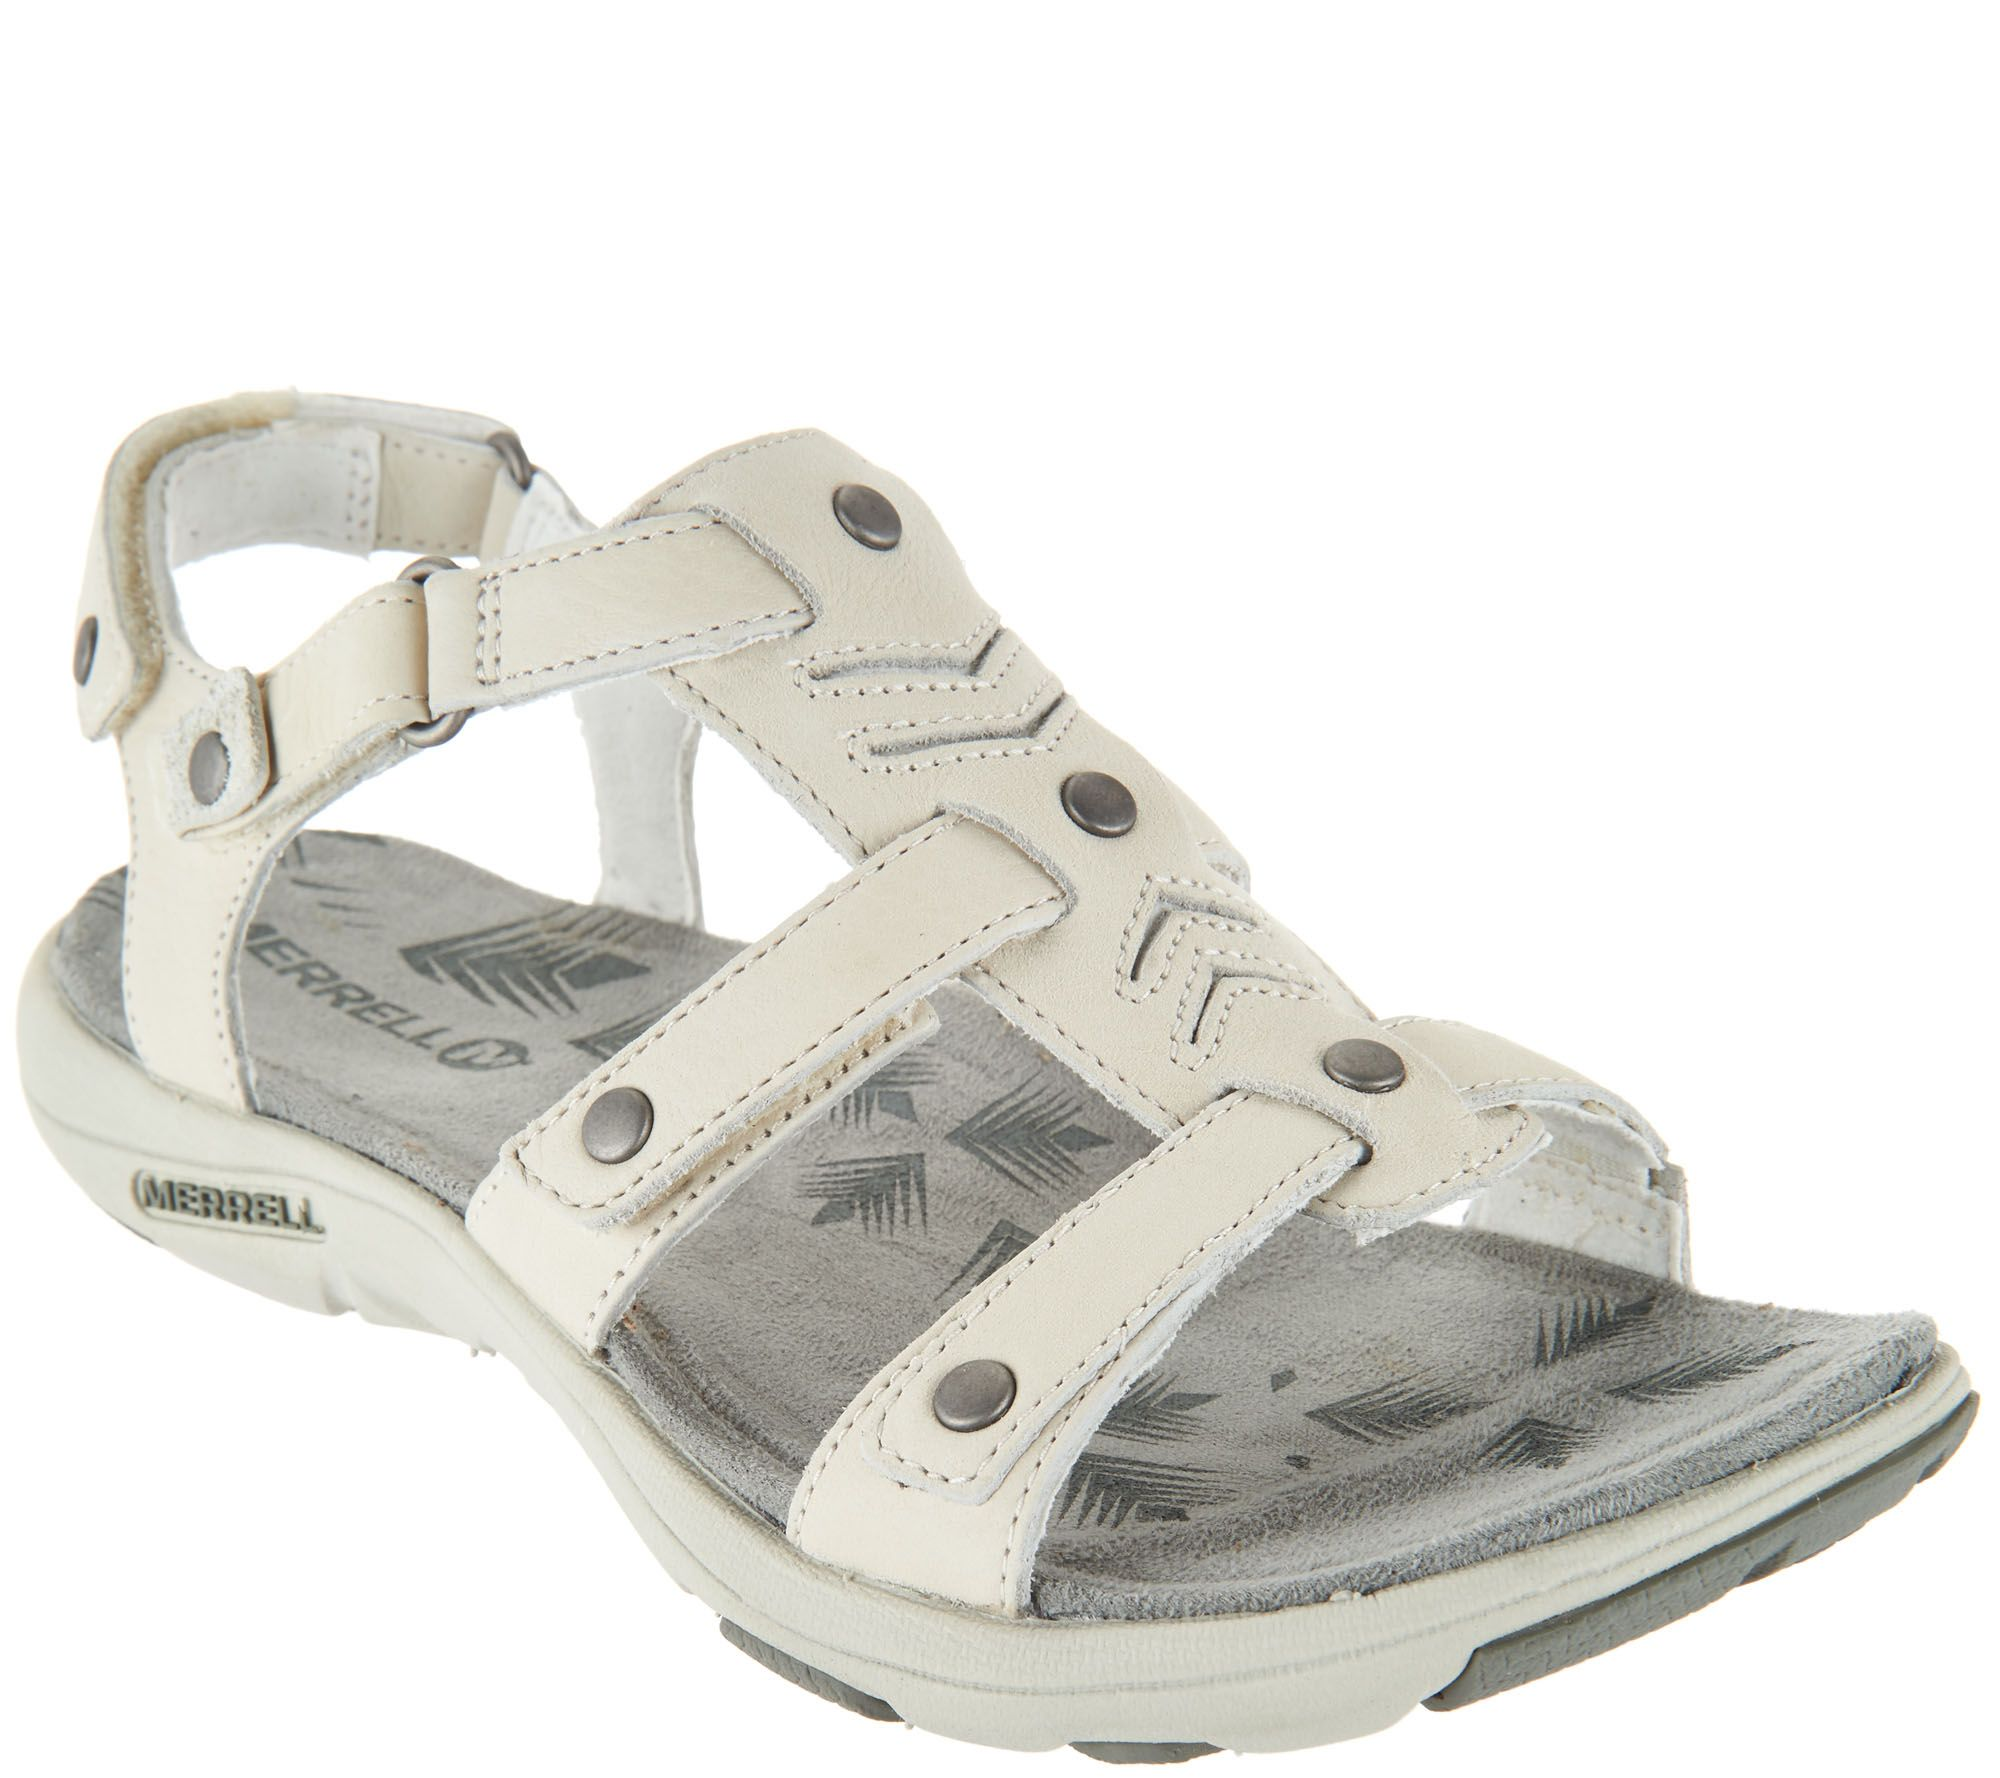 8696b5ecc9b Merrell Triple Strap Leather Sandals - Adhera Three Strap II - Page 1 —  QVC.com